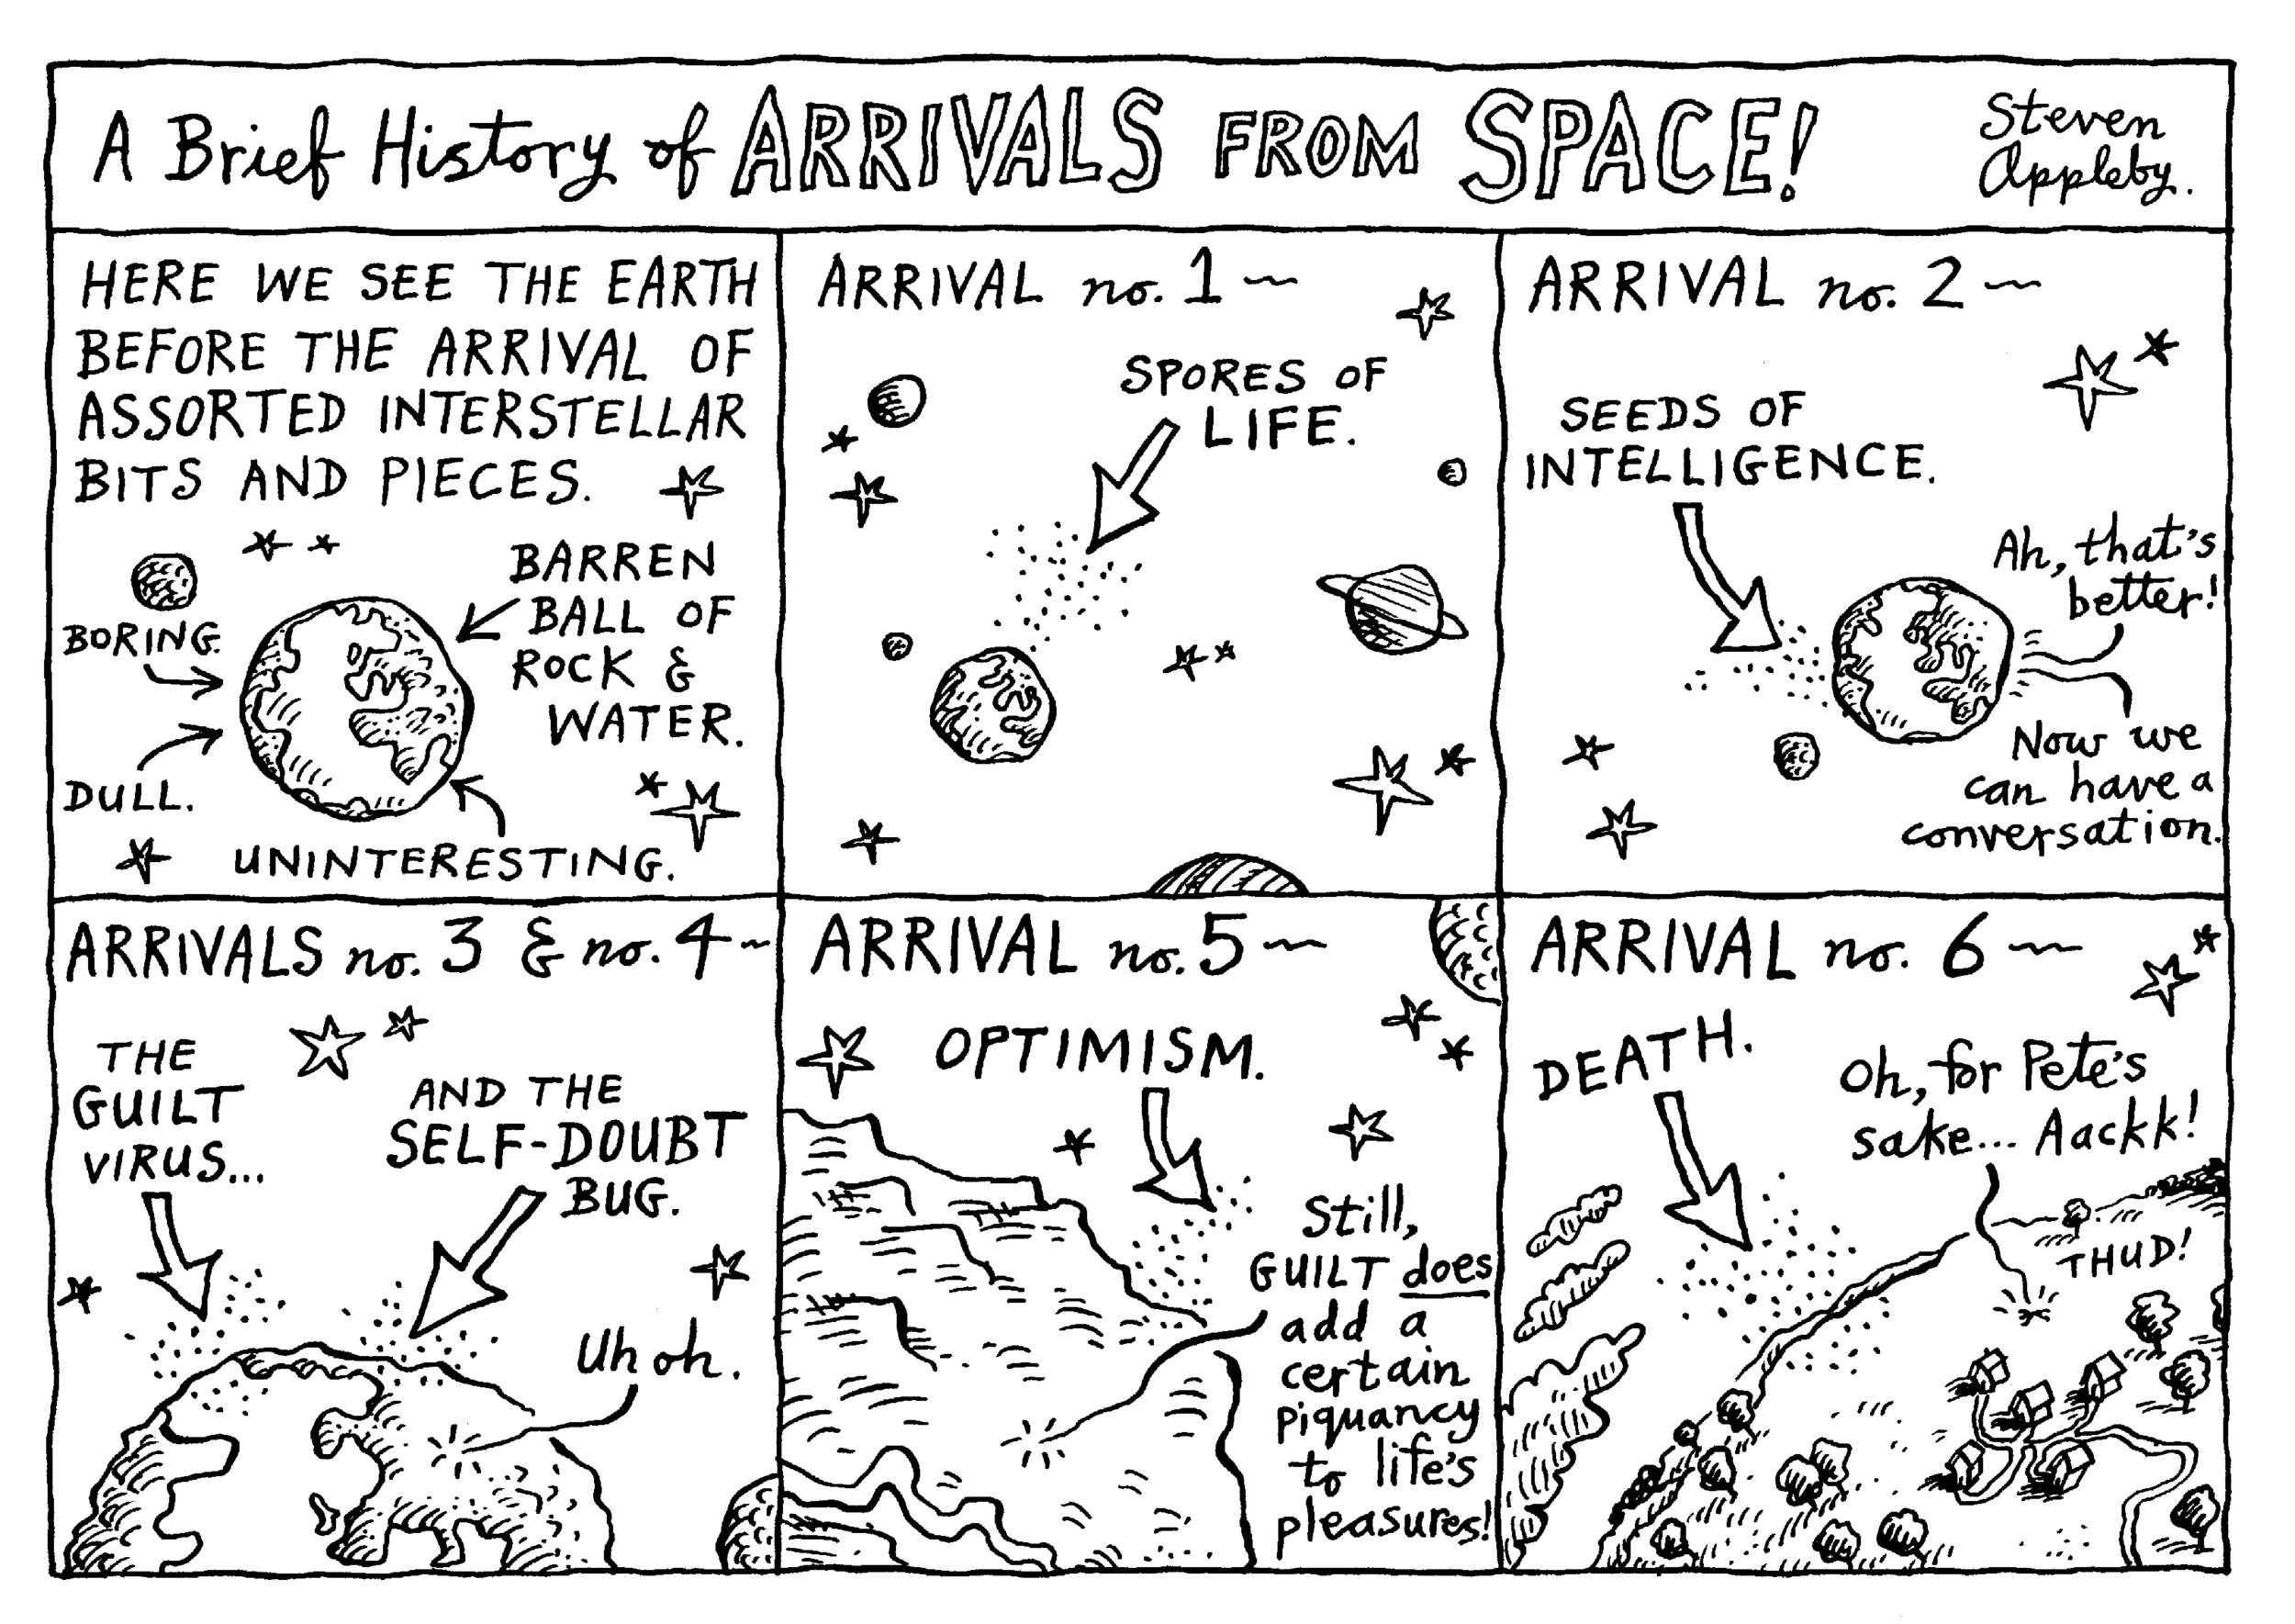 002 Arrivals From Space.jpg